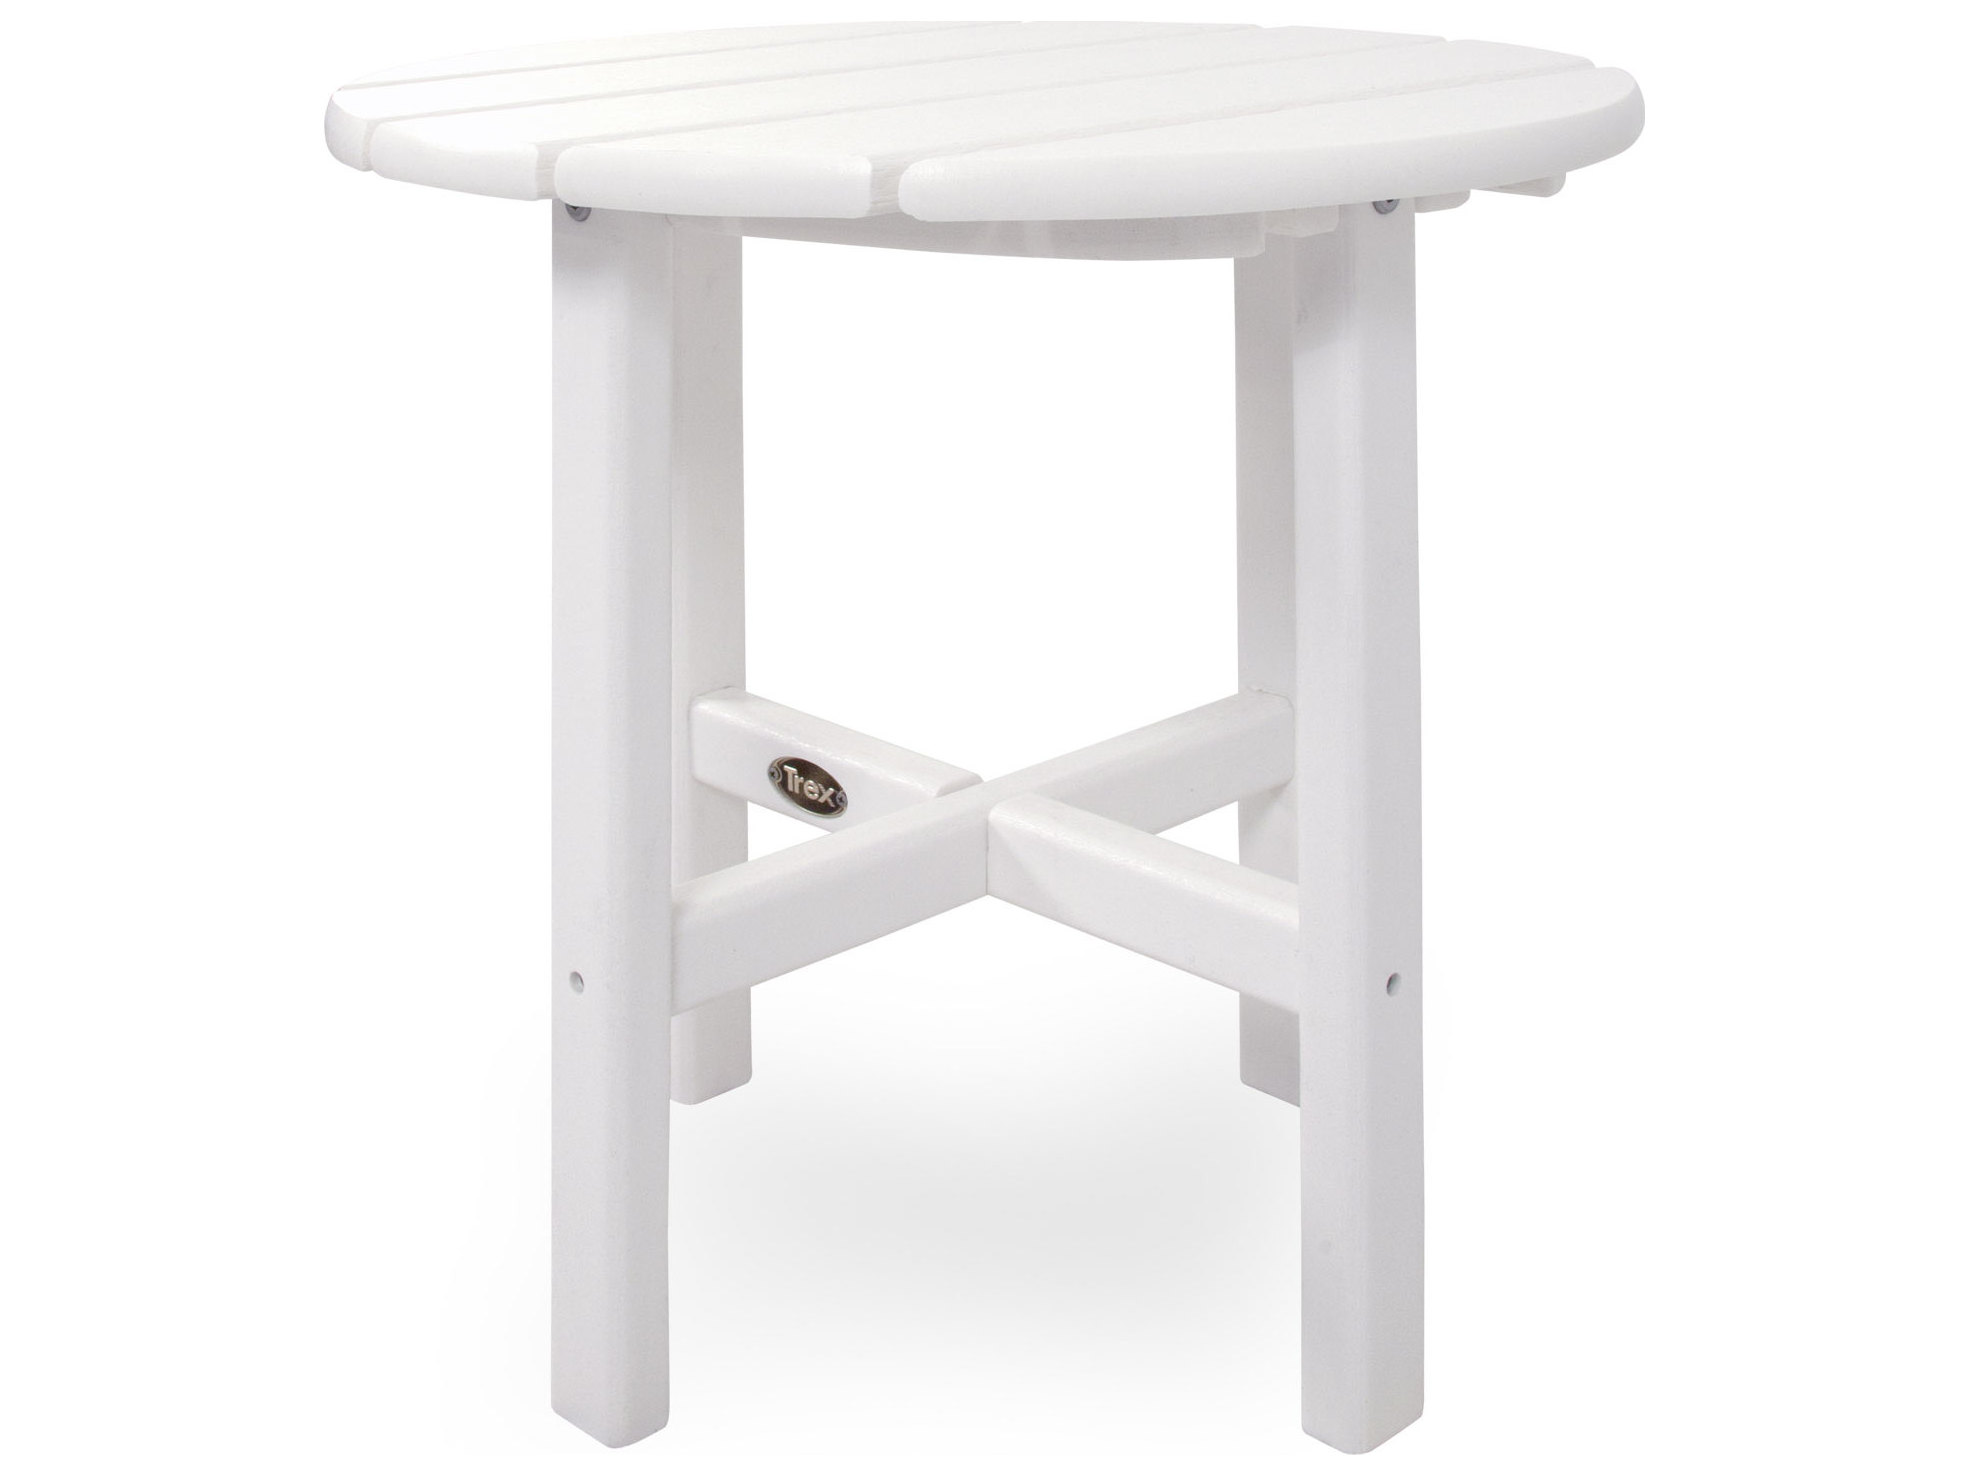 Trex cape cod recycled plastic 18 round side table txrst18 for Pvc patio table